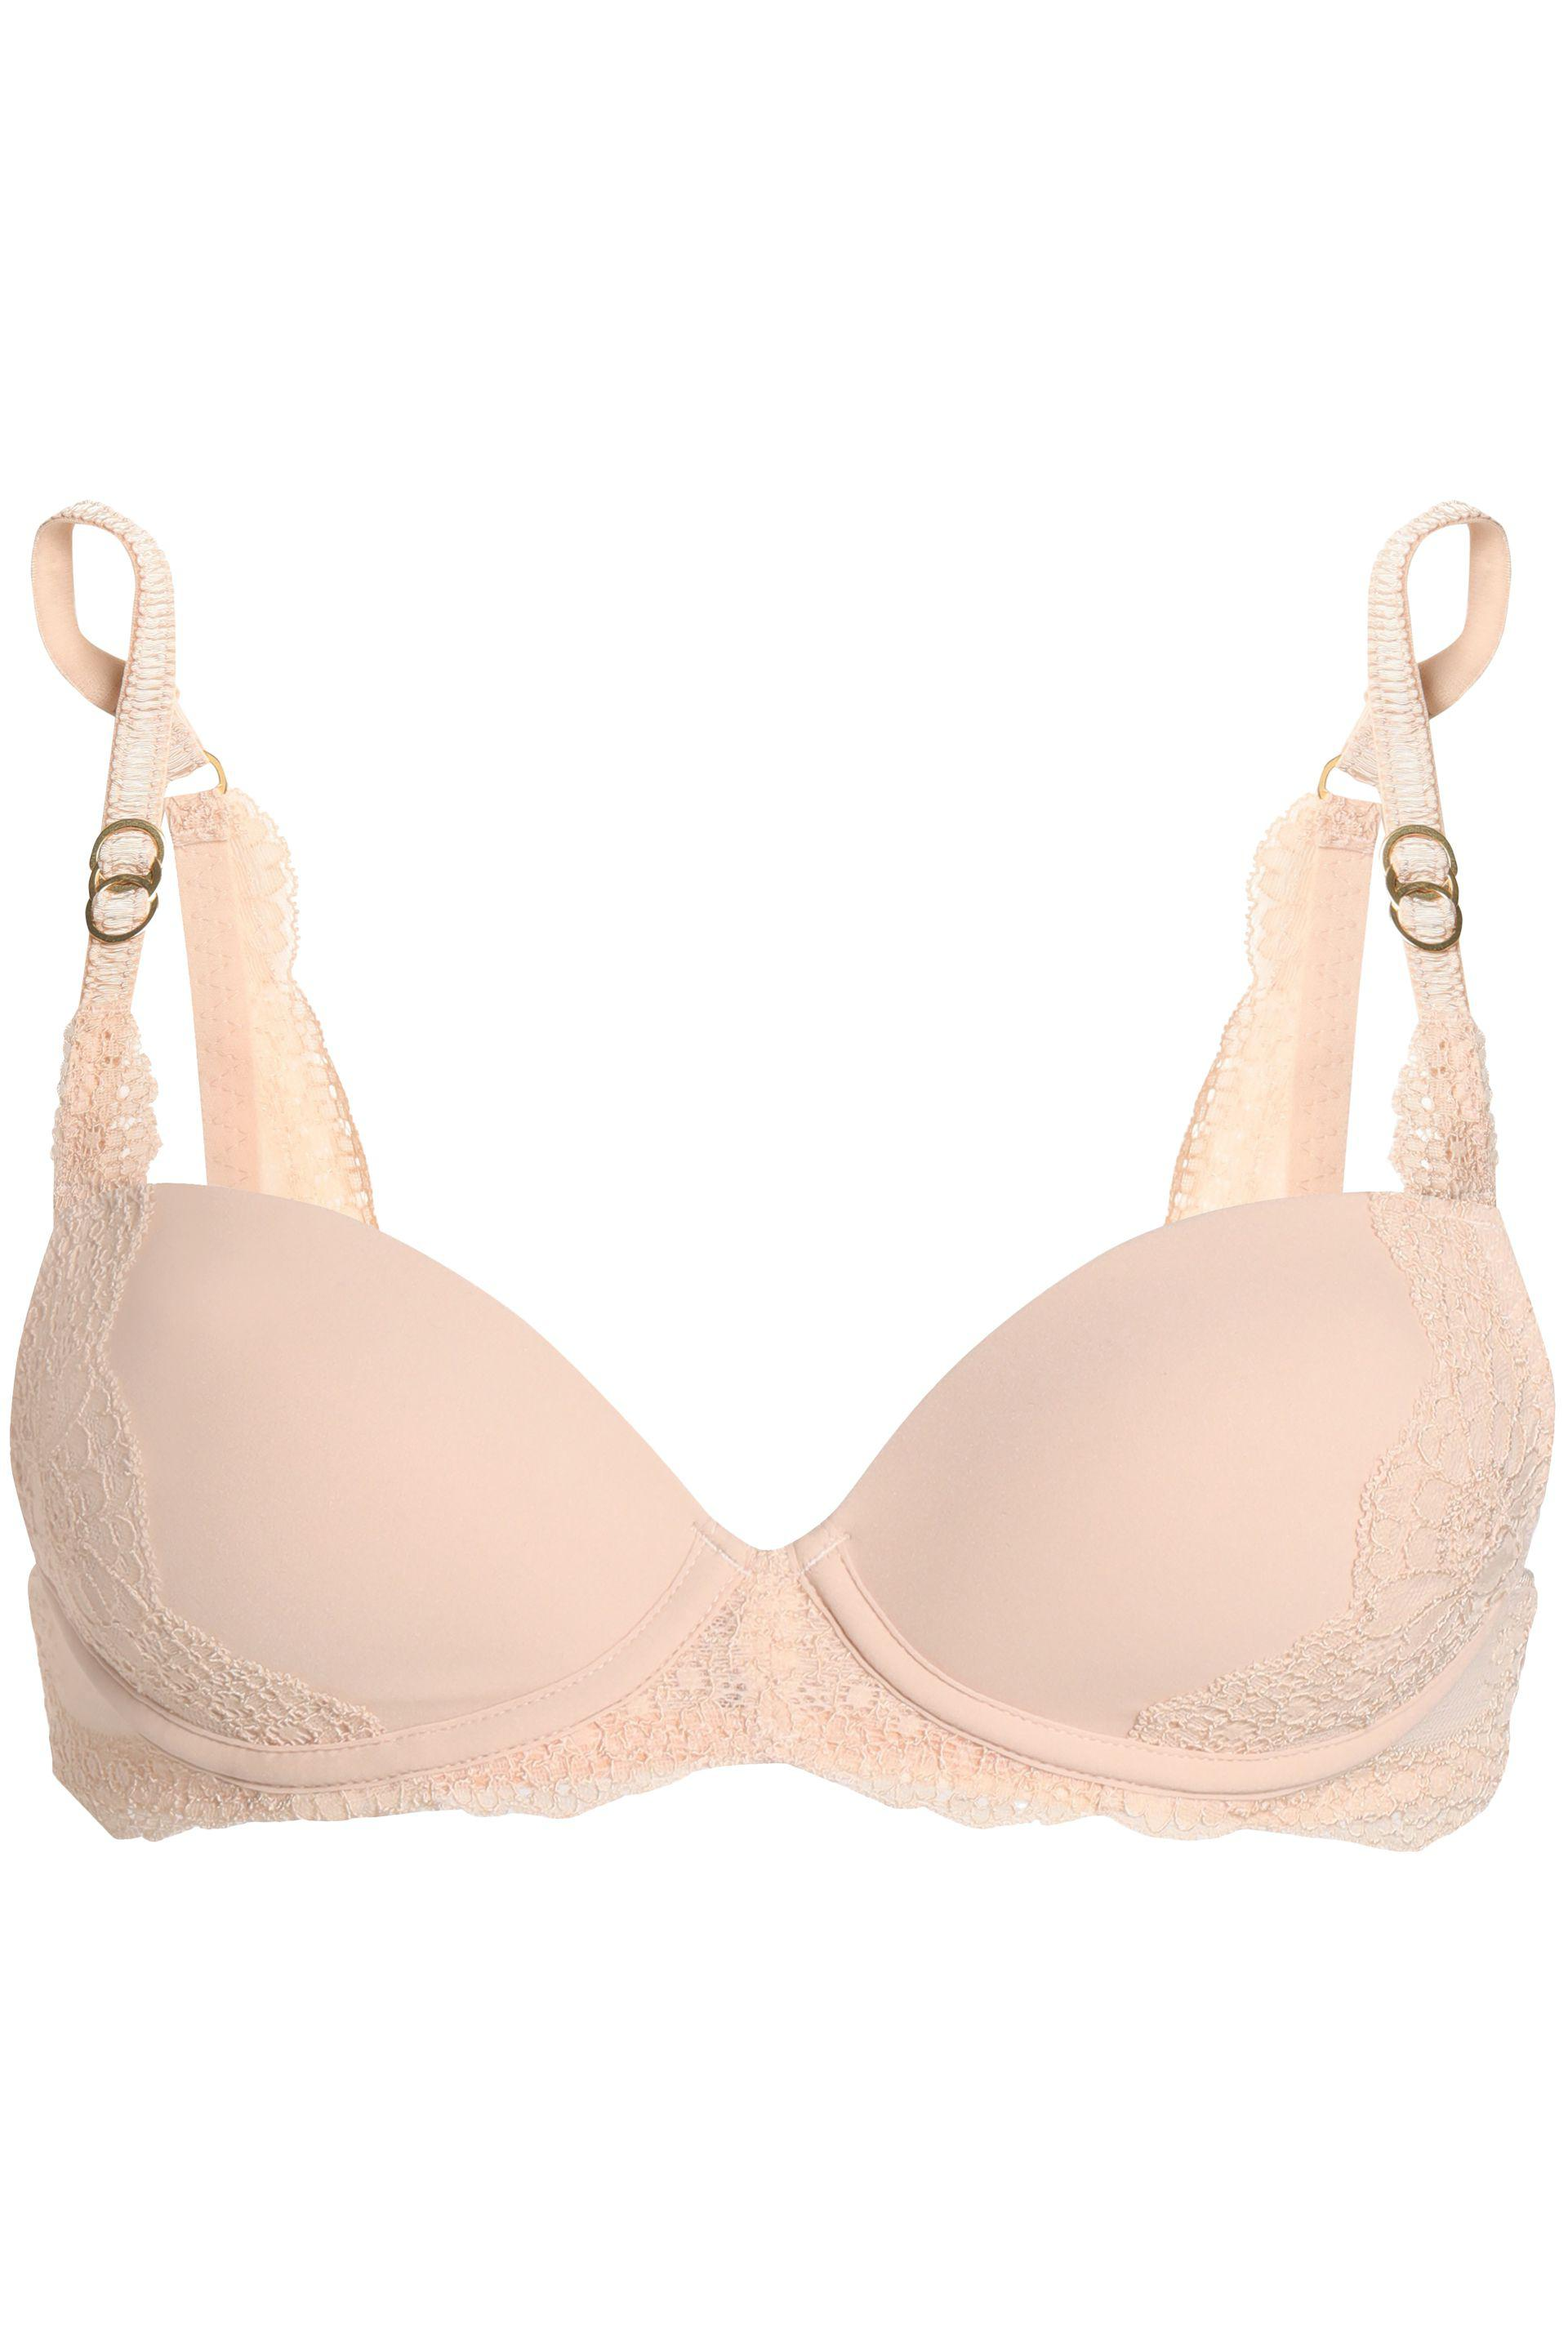 395c18a9ed Lyst - Stella Mccartney Smooth And Lace Stretch-jersey Underwired ...